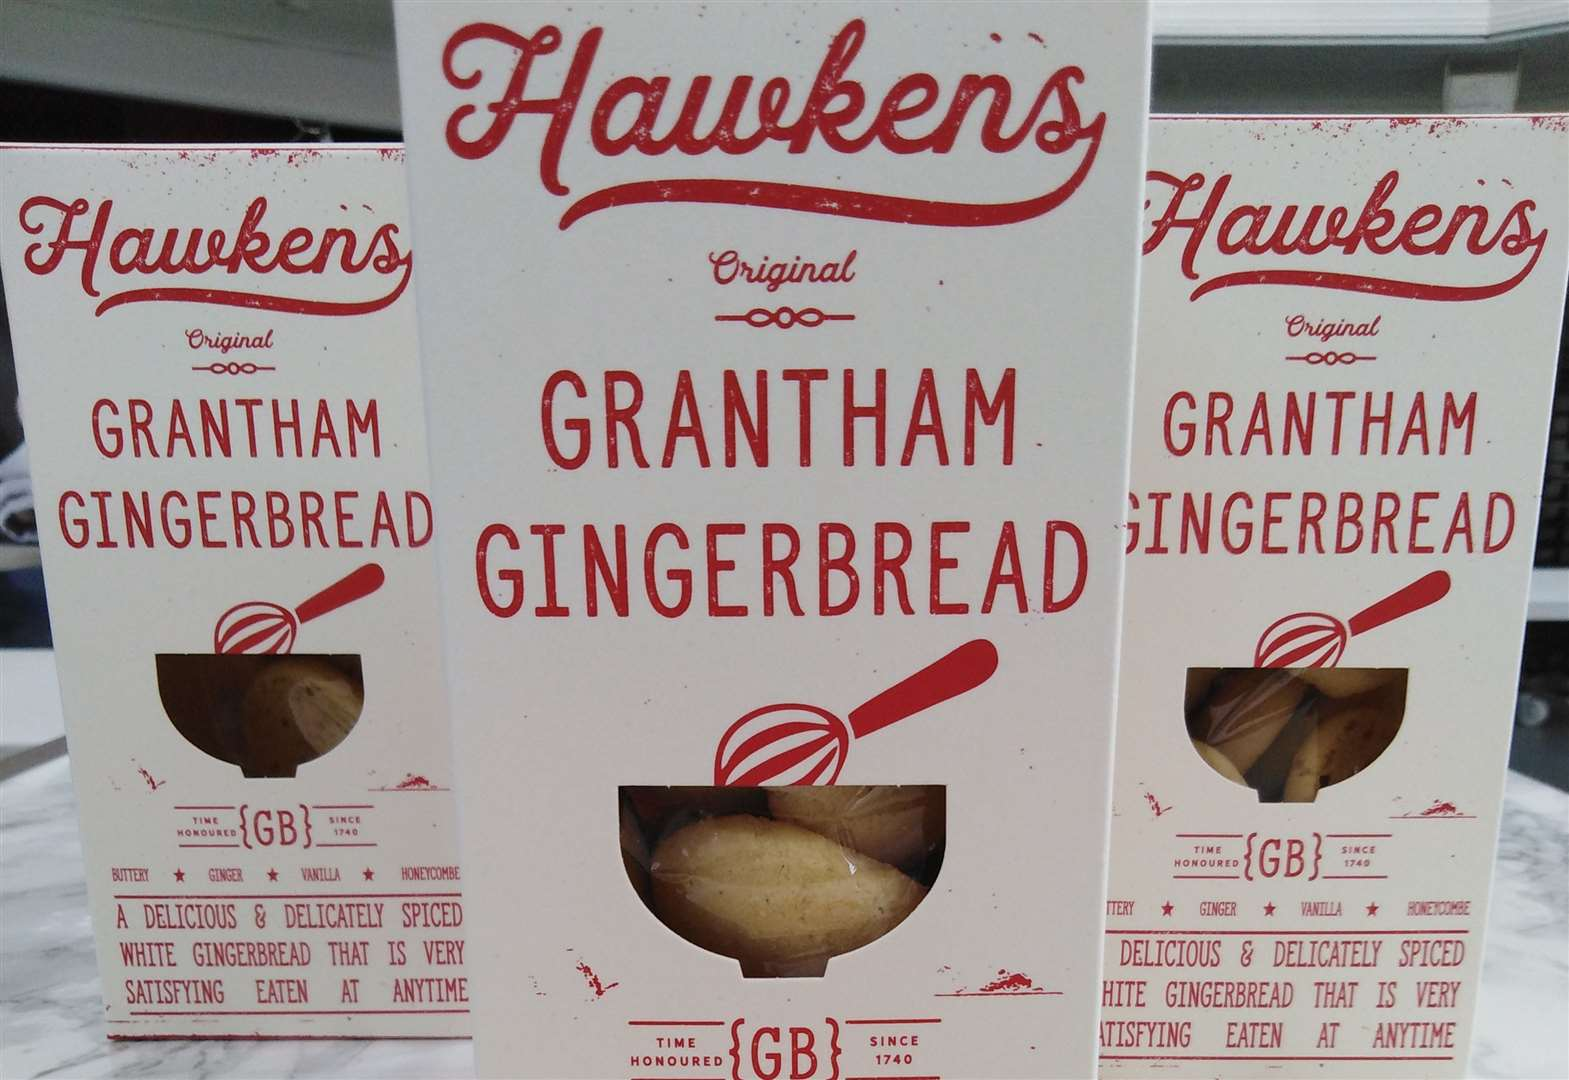 New look for Grantham Gingerbread